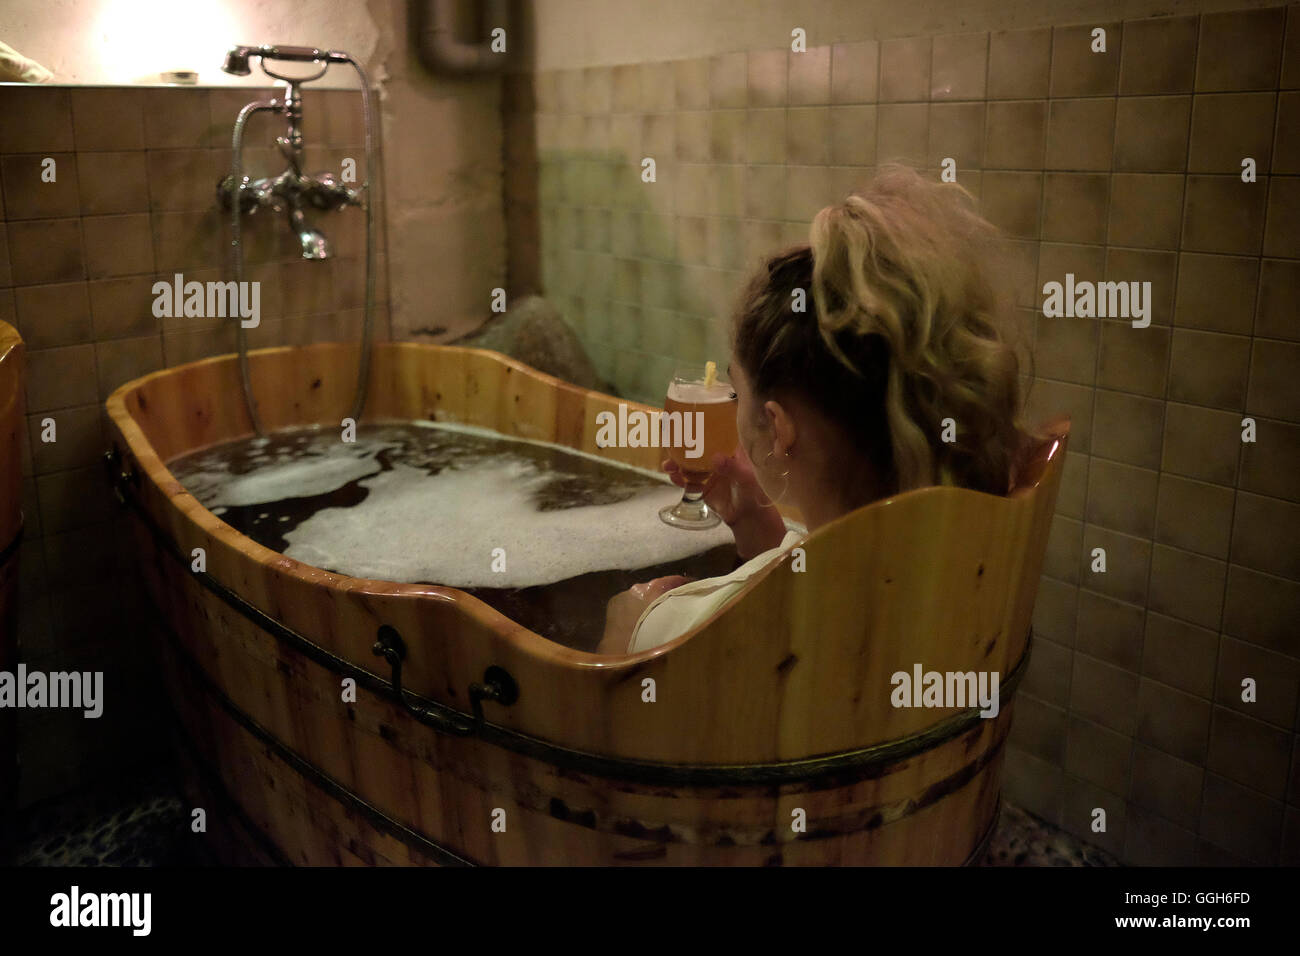 Bernadita a young Lithuanian woman soaking in a tub filled of beer in the spa of Hotel Romantic in the town of Panevezys - Stock Image